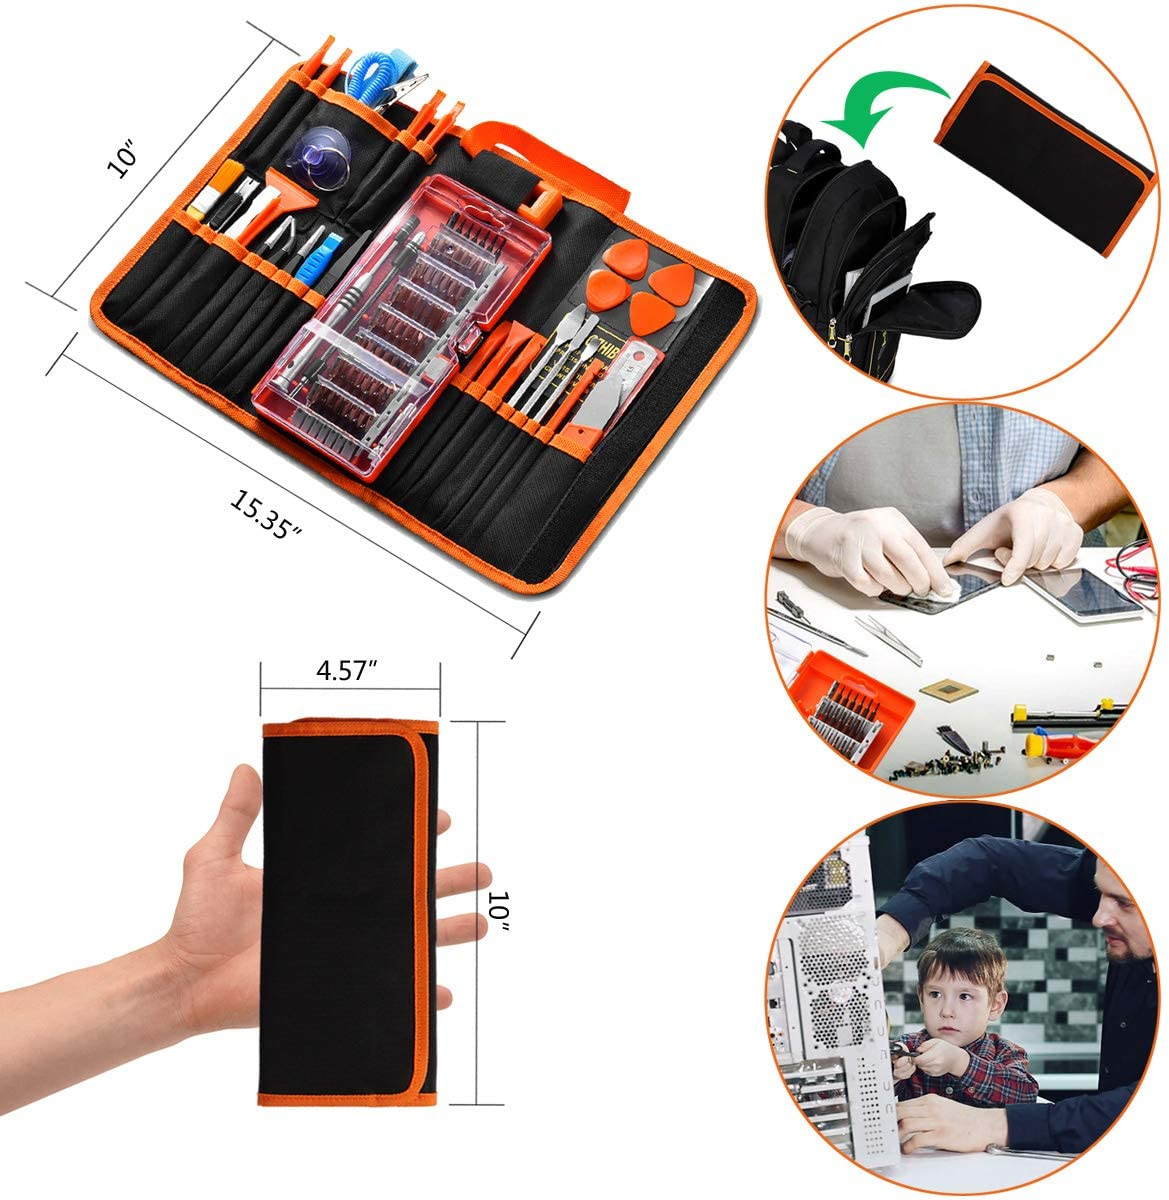 Computer iPad Laptop GANGZHIBAO 90pcs Electronics Repair Tool Kit Professional Apple iPhone PC Tablet Precision Screwdriver Set Magnetic for Fix Open Pry Cell Phone Macbook with Portable Bag